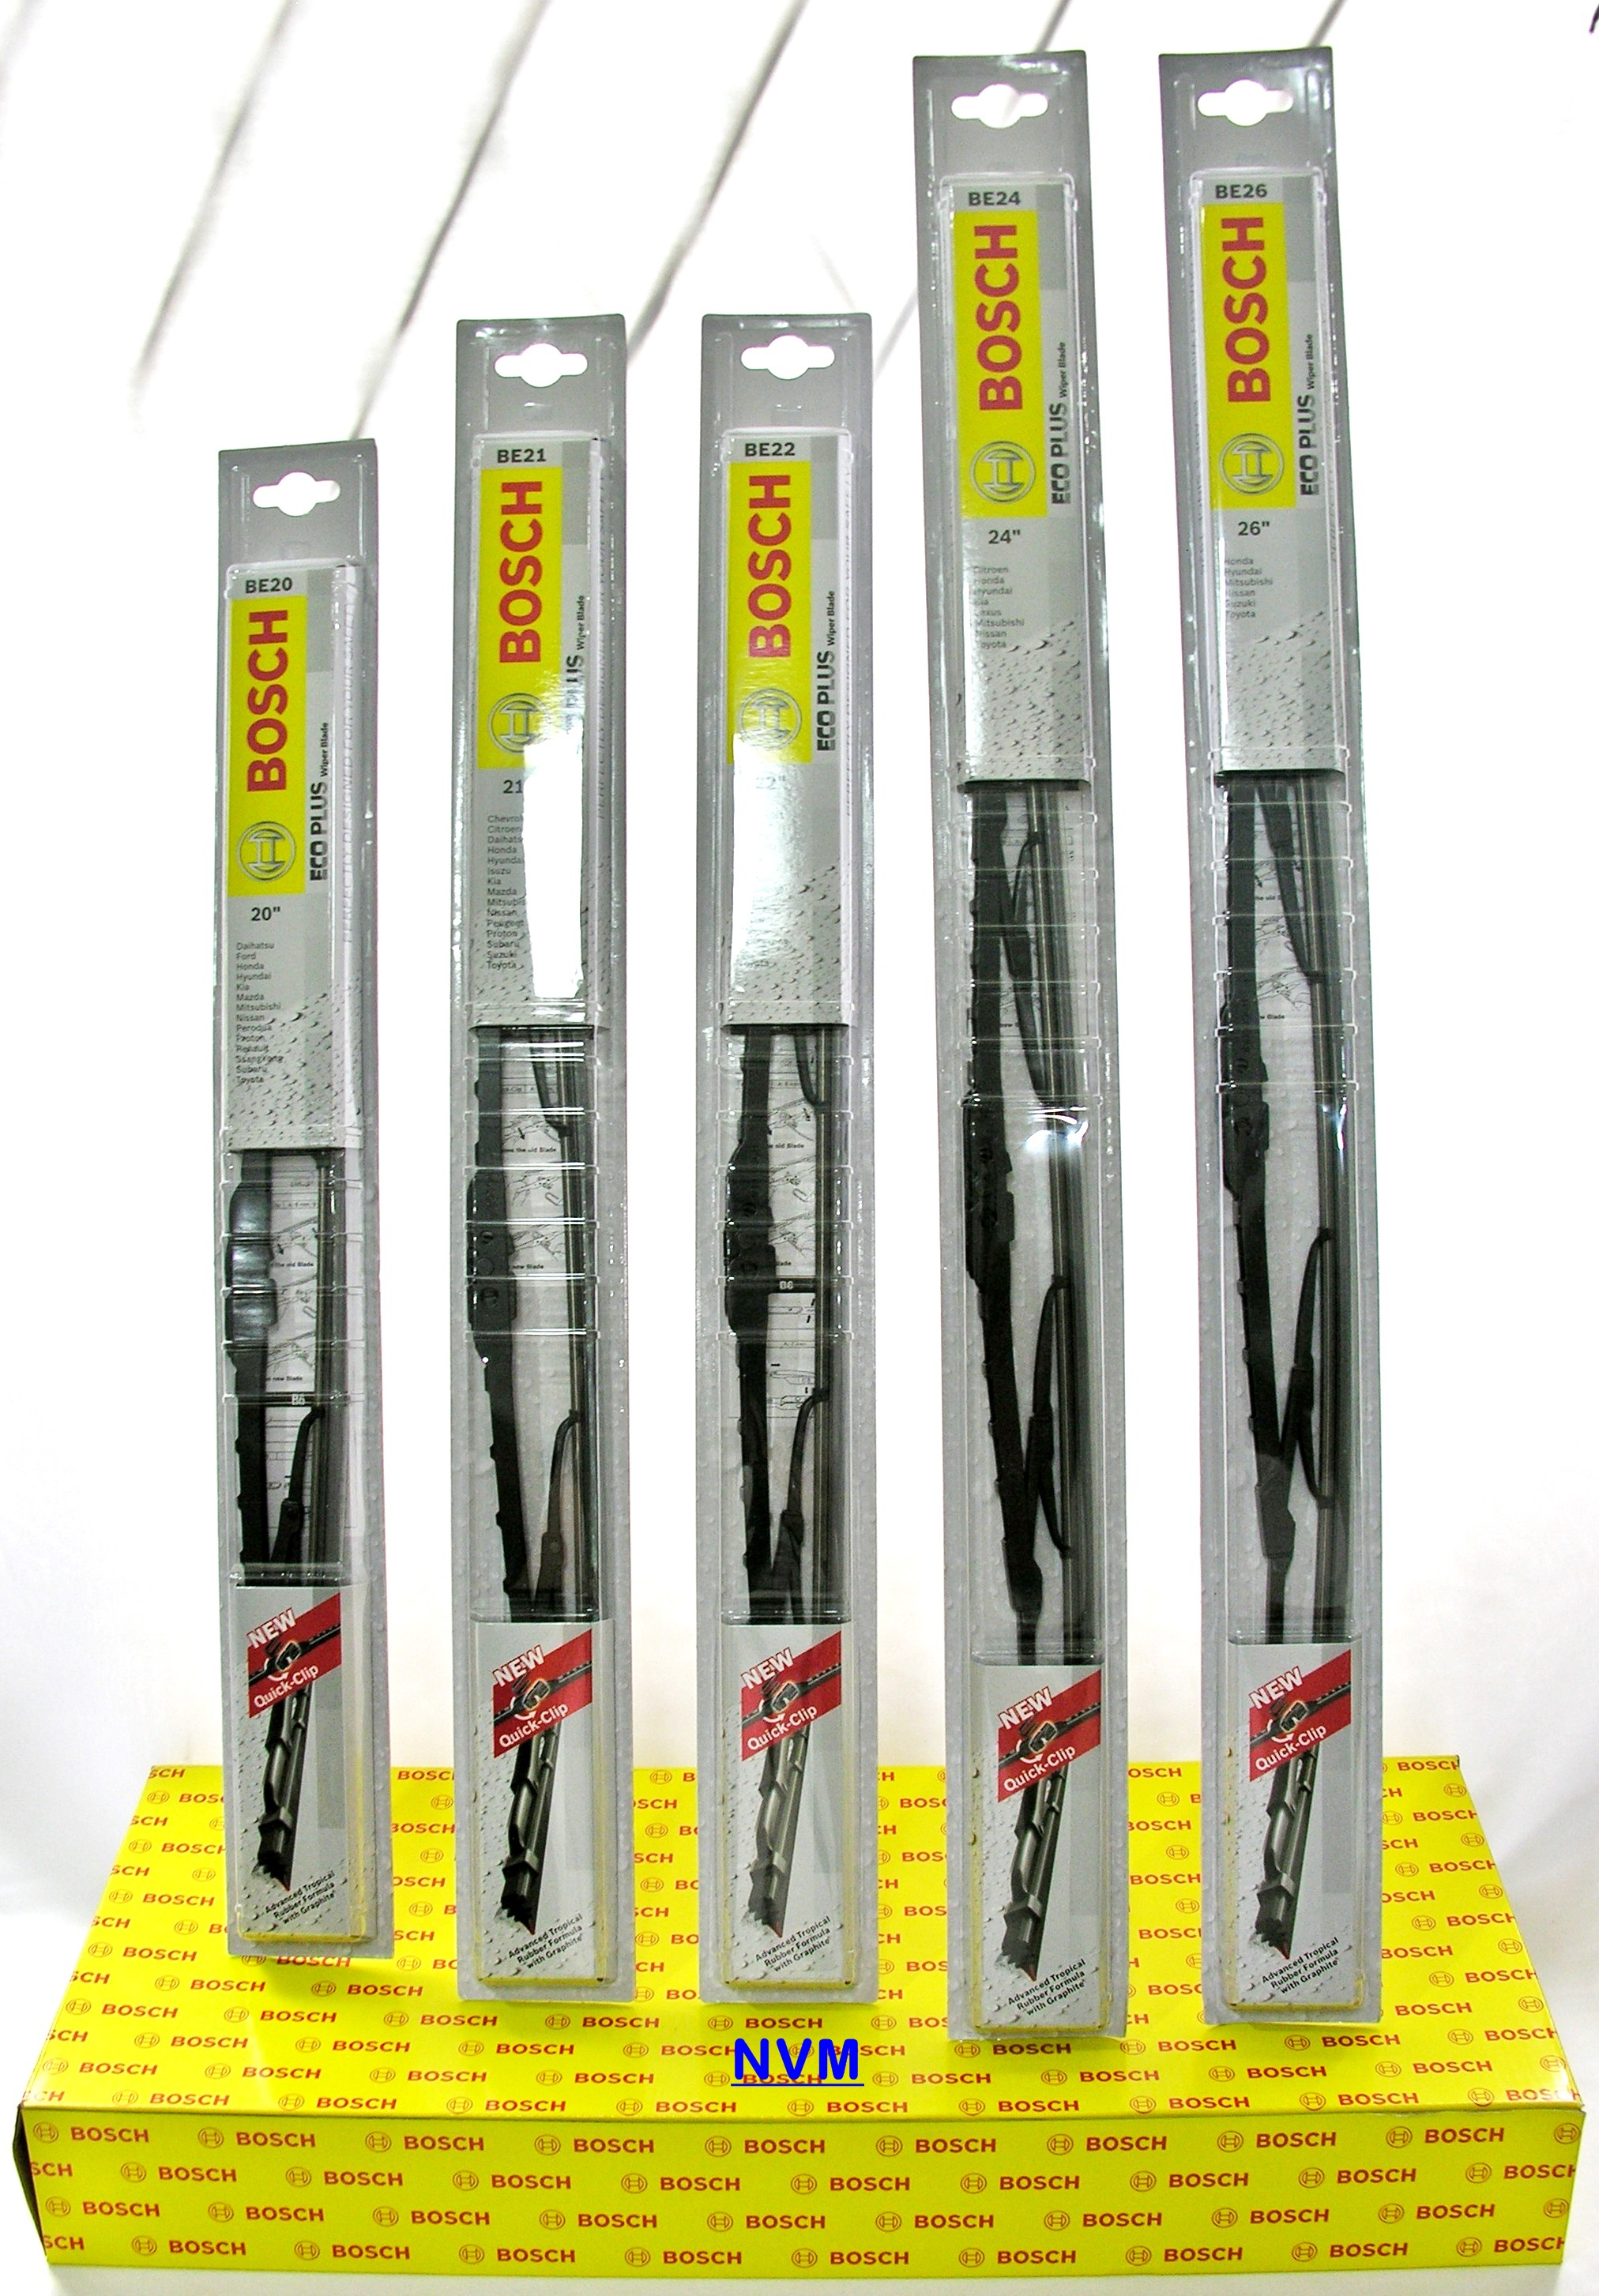 Harga WIPER BOSCH ECO PLUS 22 / 24